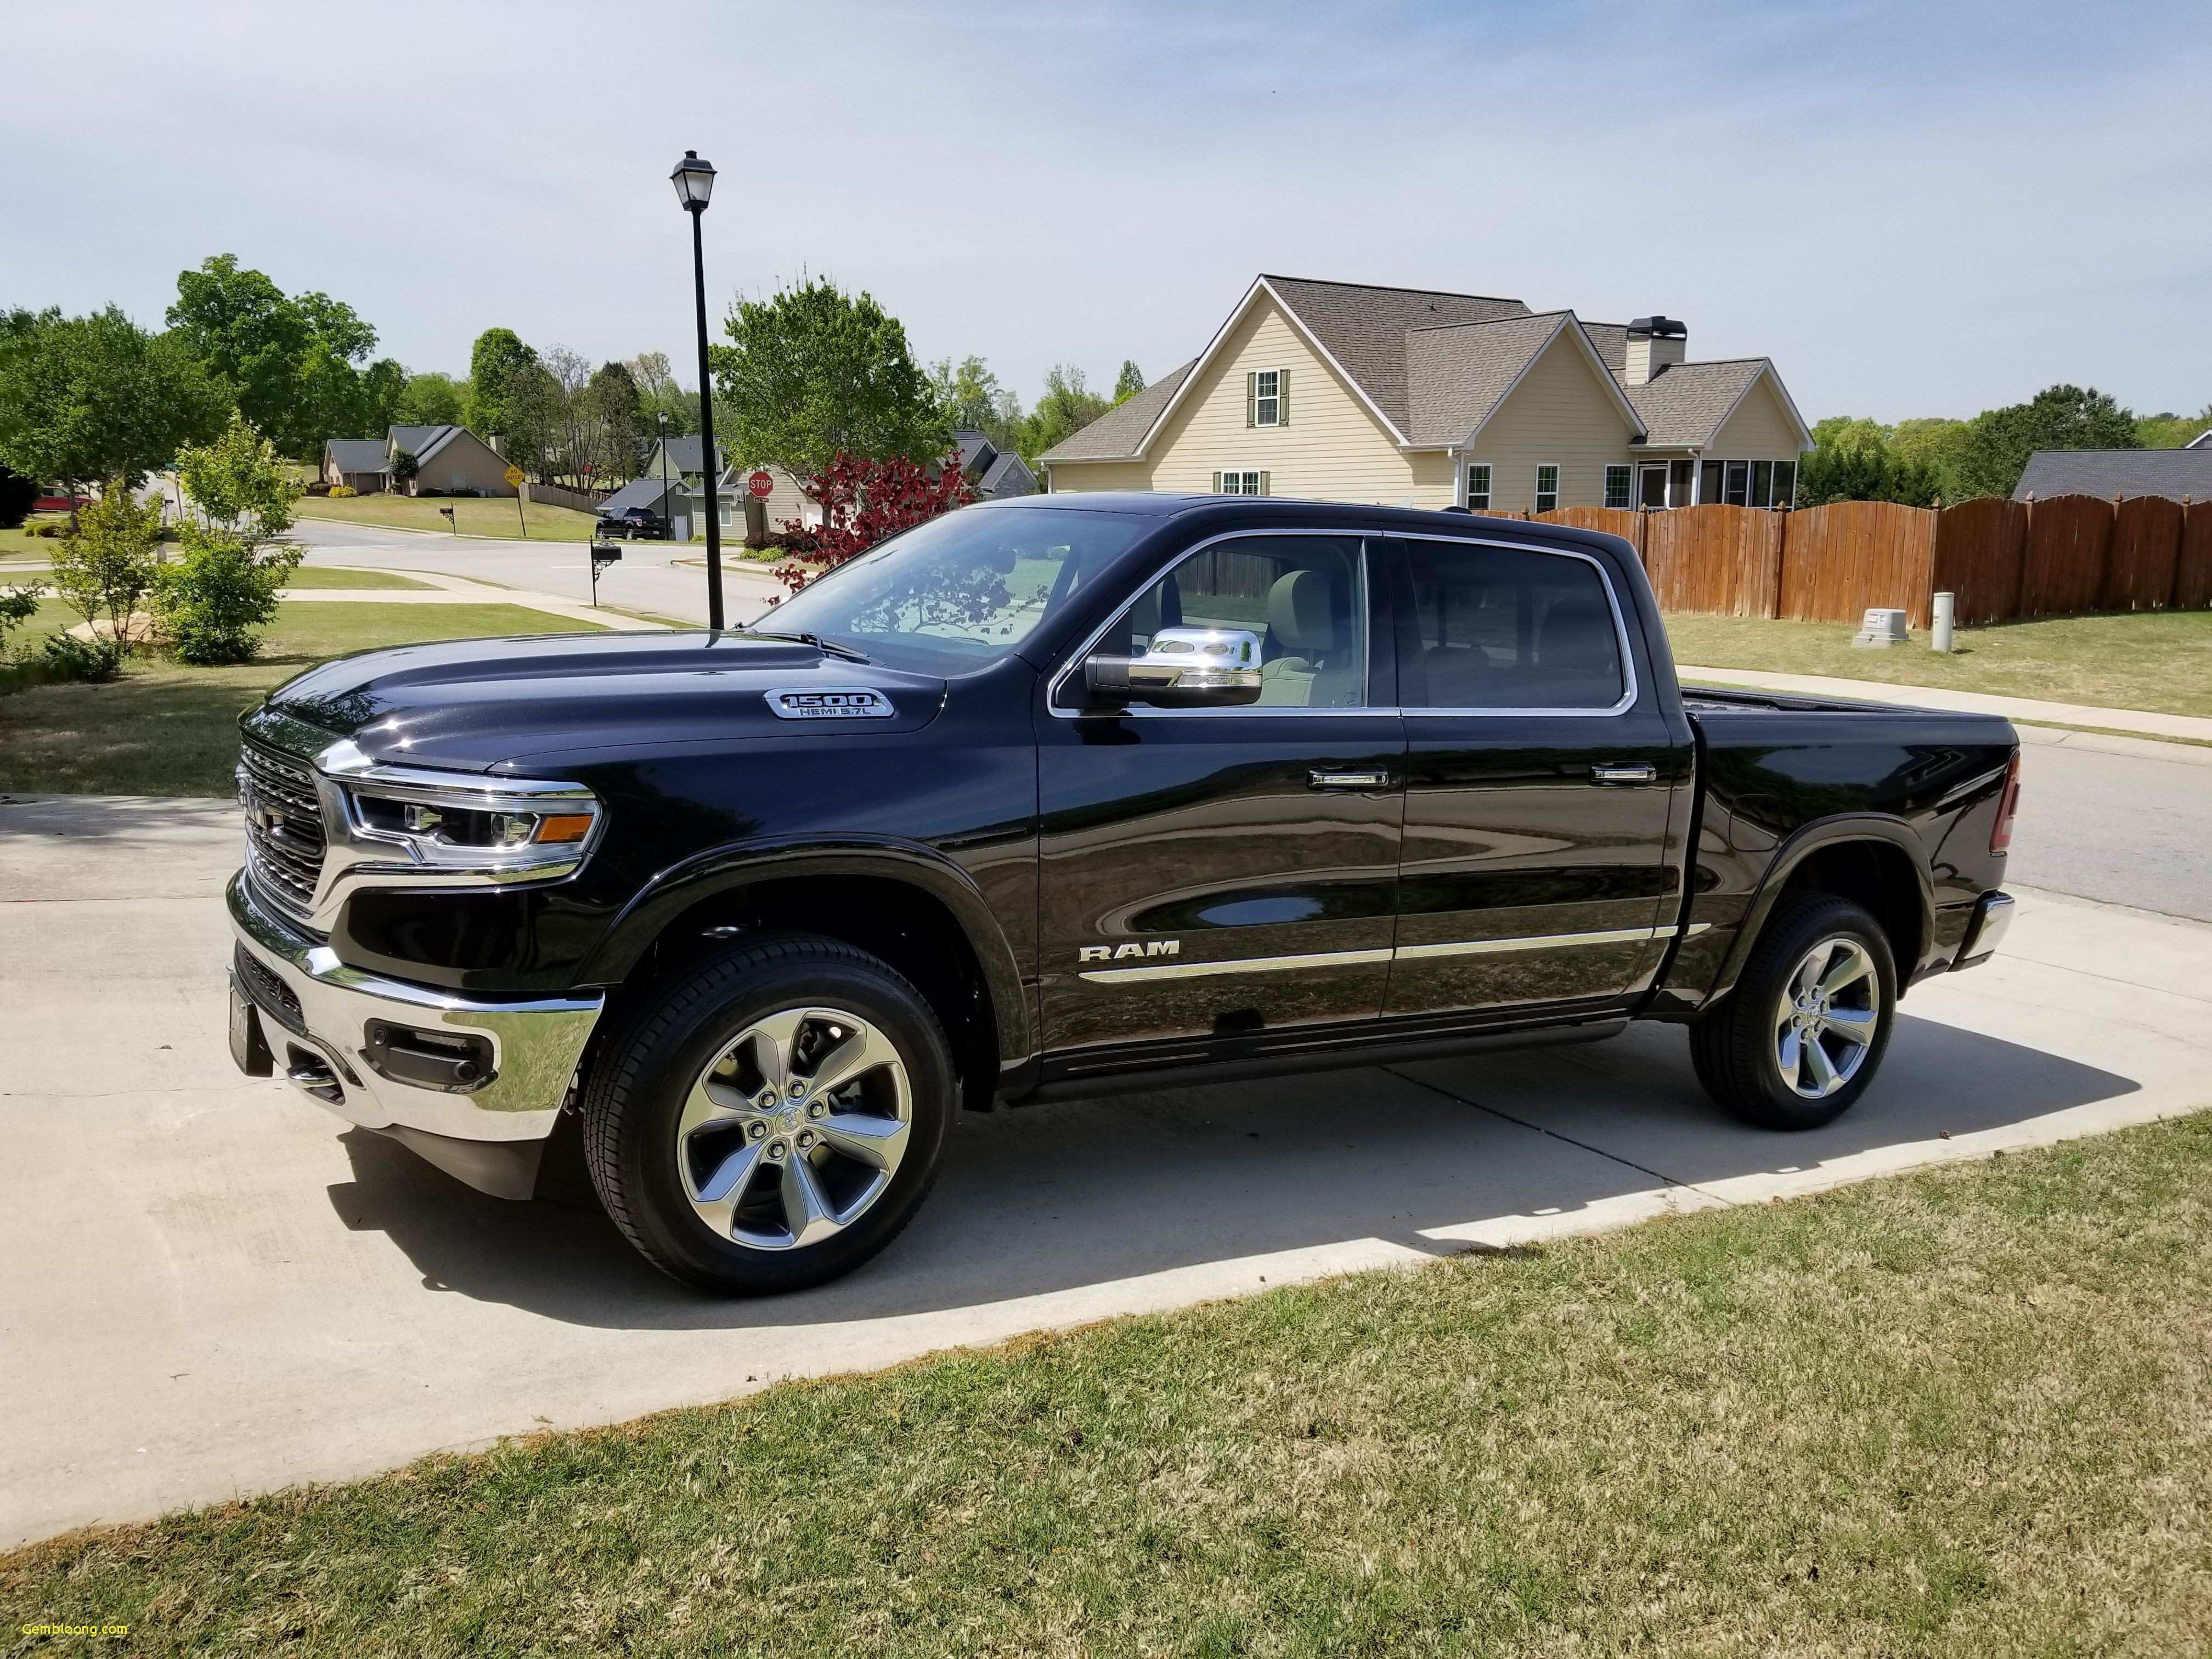 87 Great Best Dodge 2019 Limited Spy Shoot Photos by Best Dodge 2019 Limited Spy Shoot